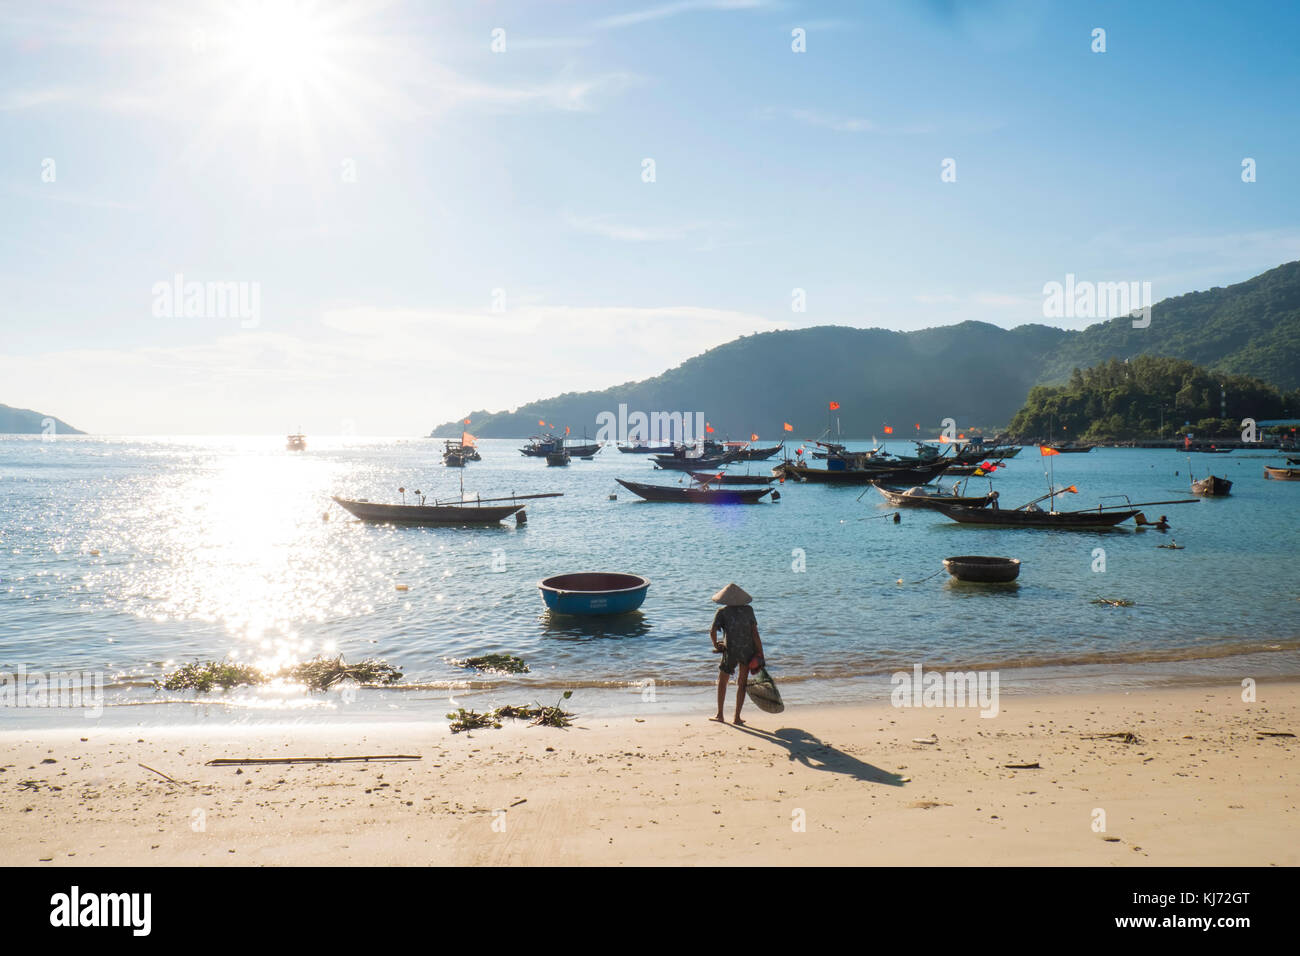 fishing boats off the beach on the Cham Islands in Vietnam - Stock Image